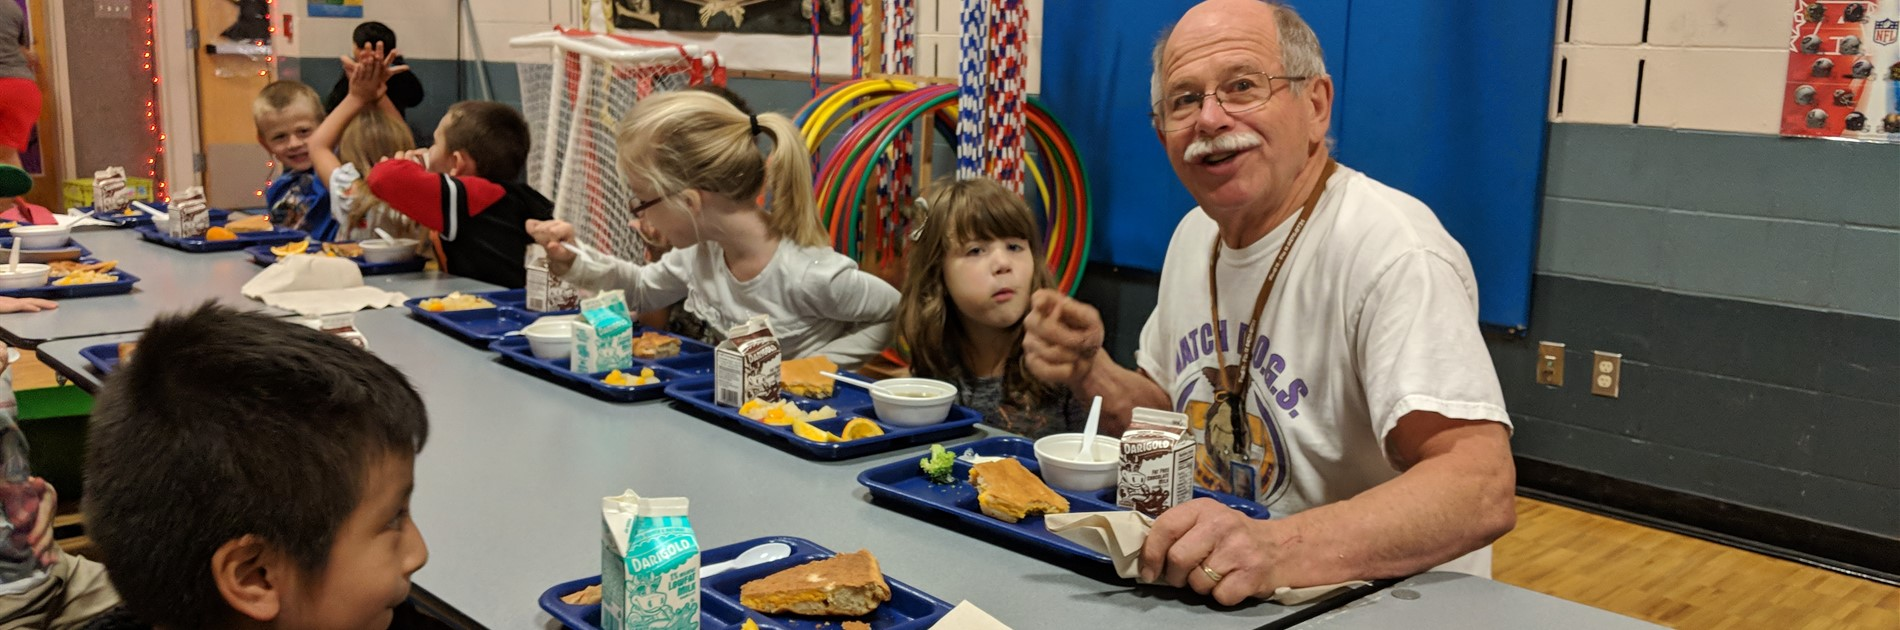 Watch DOG Grandpa Terry has lunch with students